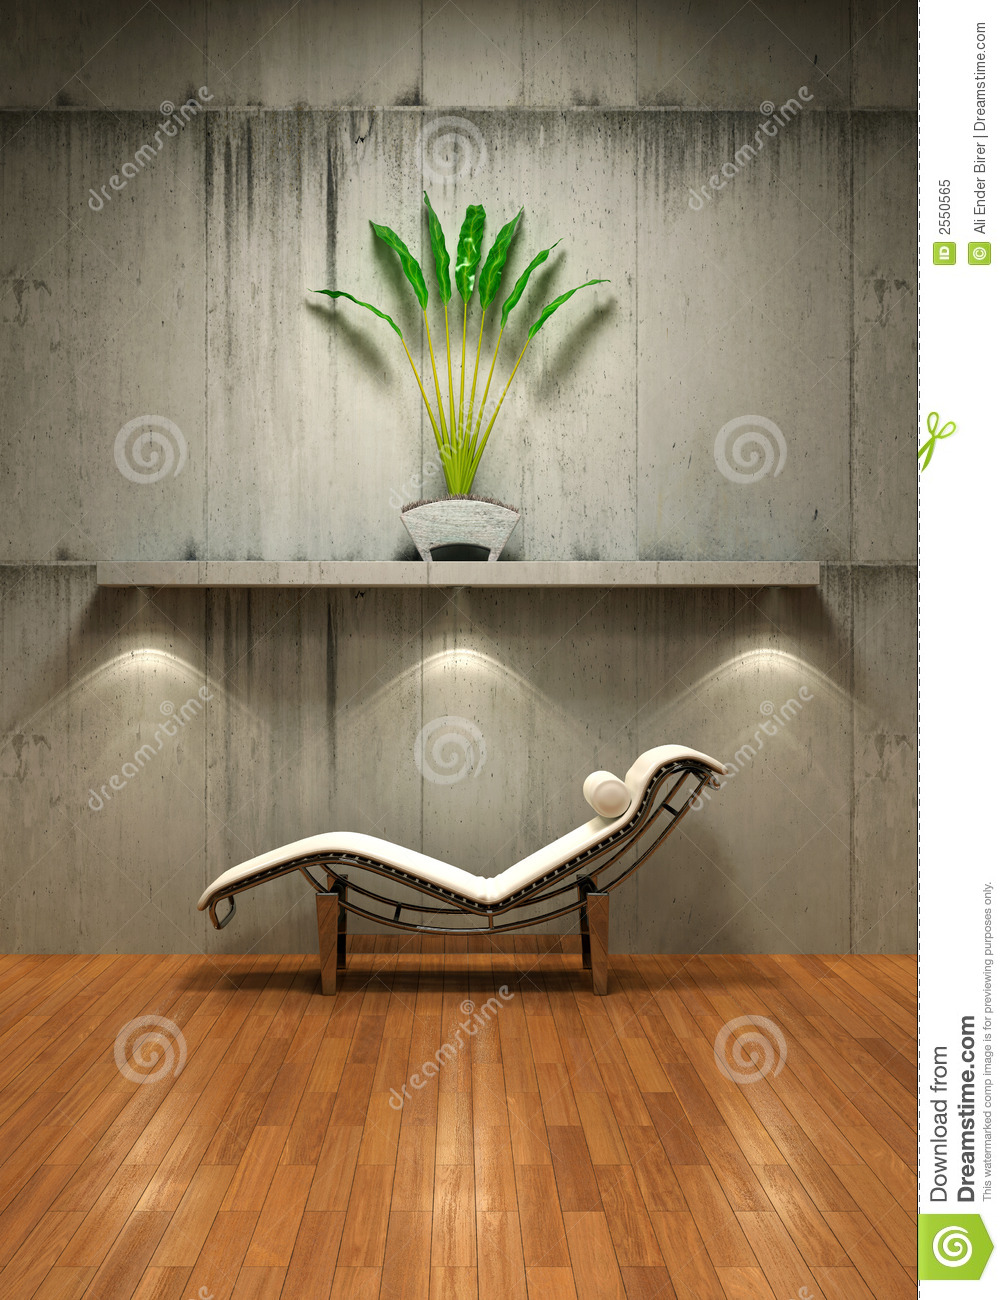 Contemporary interior 01 royalty free stock photo image for Different interior design concepts